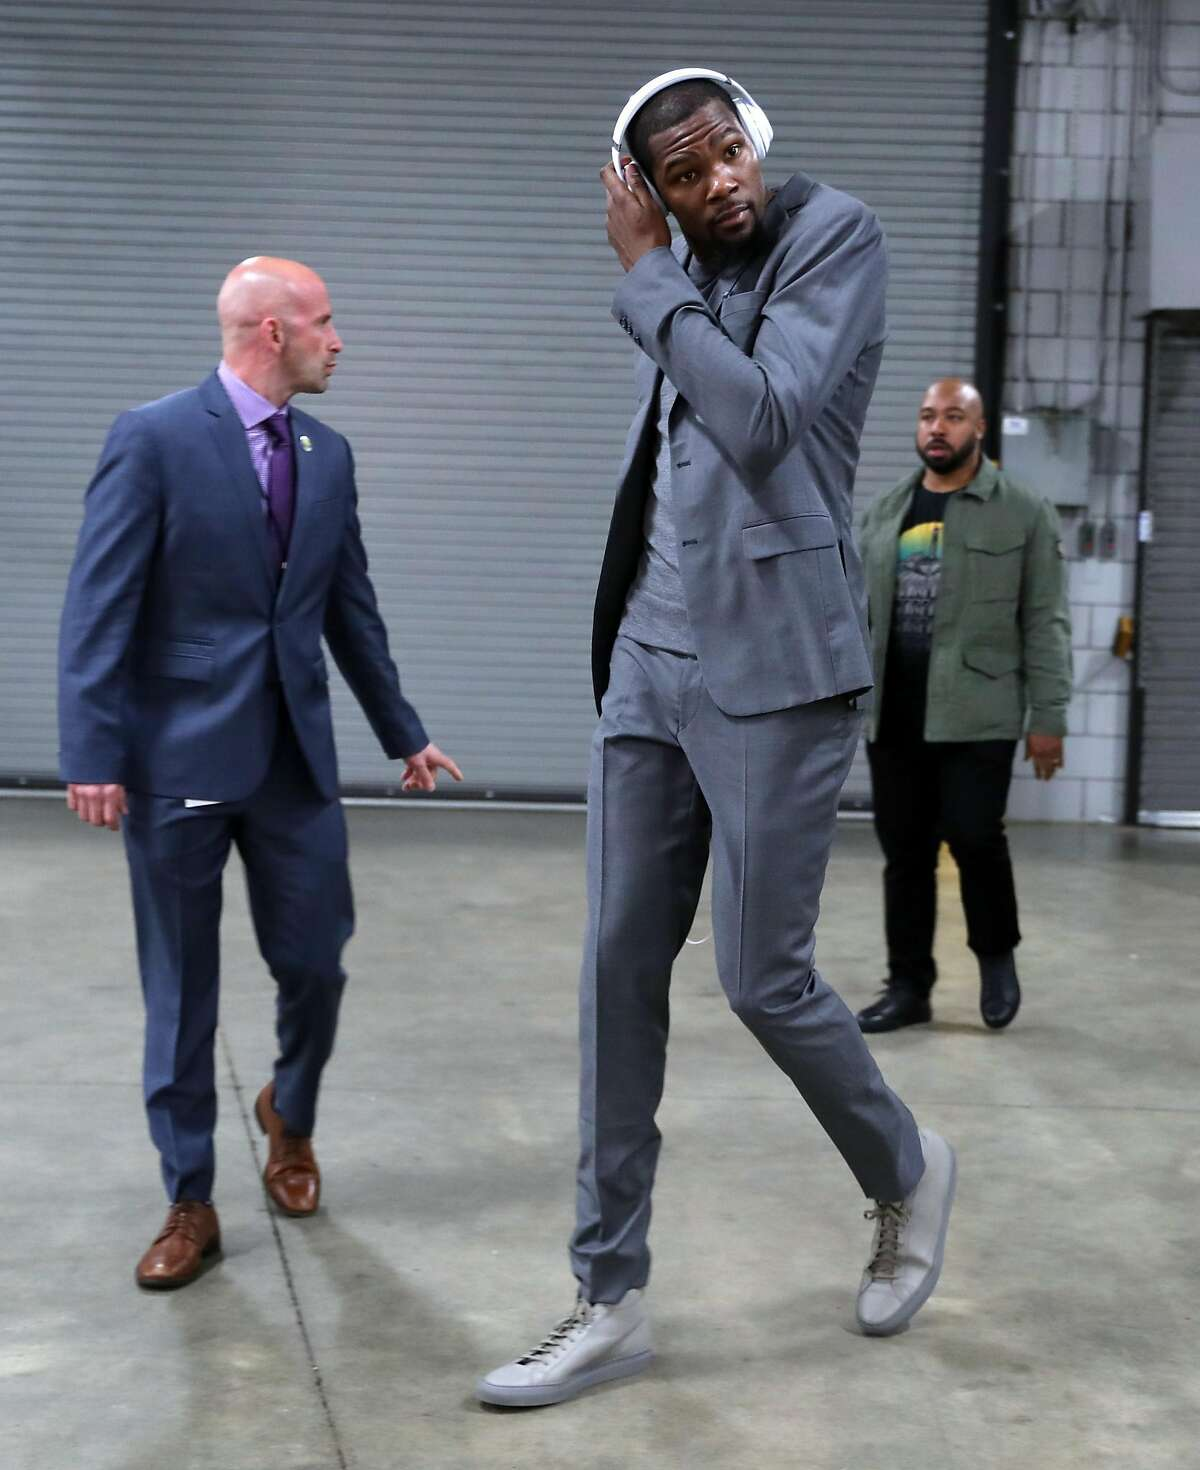 KD doesn't always go casual, however. For Game 3, he went with a slim-fitting grey suit, an outfit he also wore on the bench as he was sidelined with an injury.